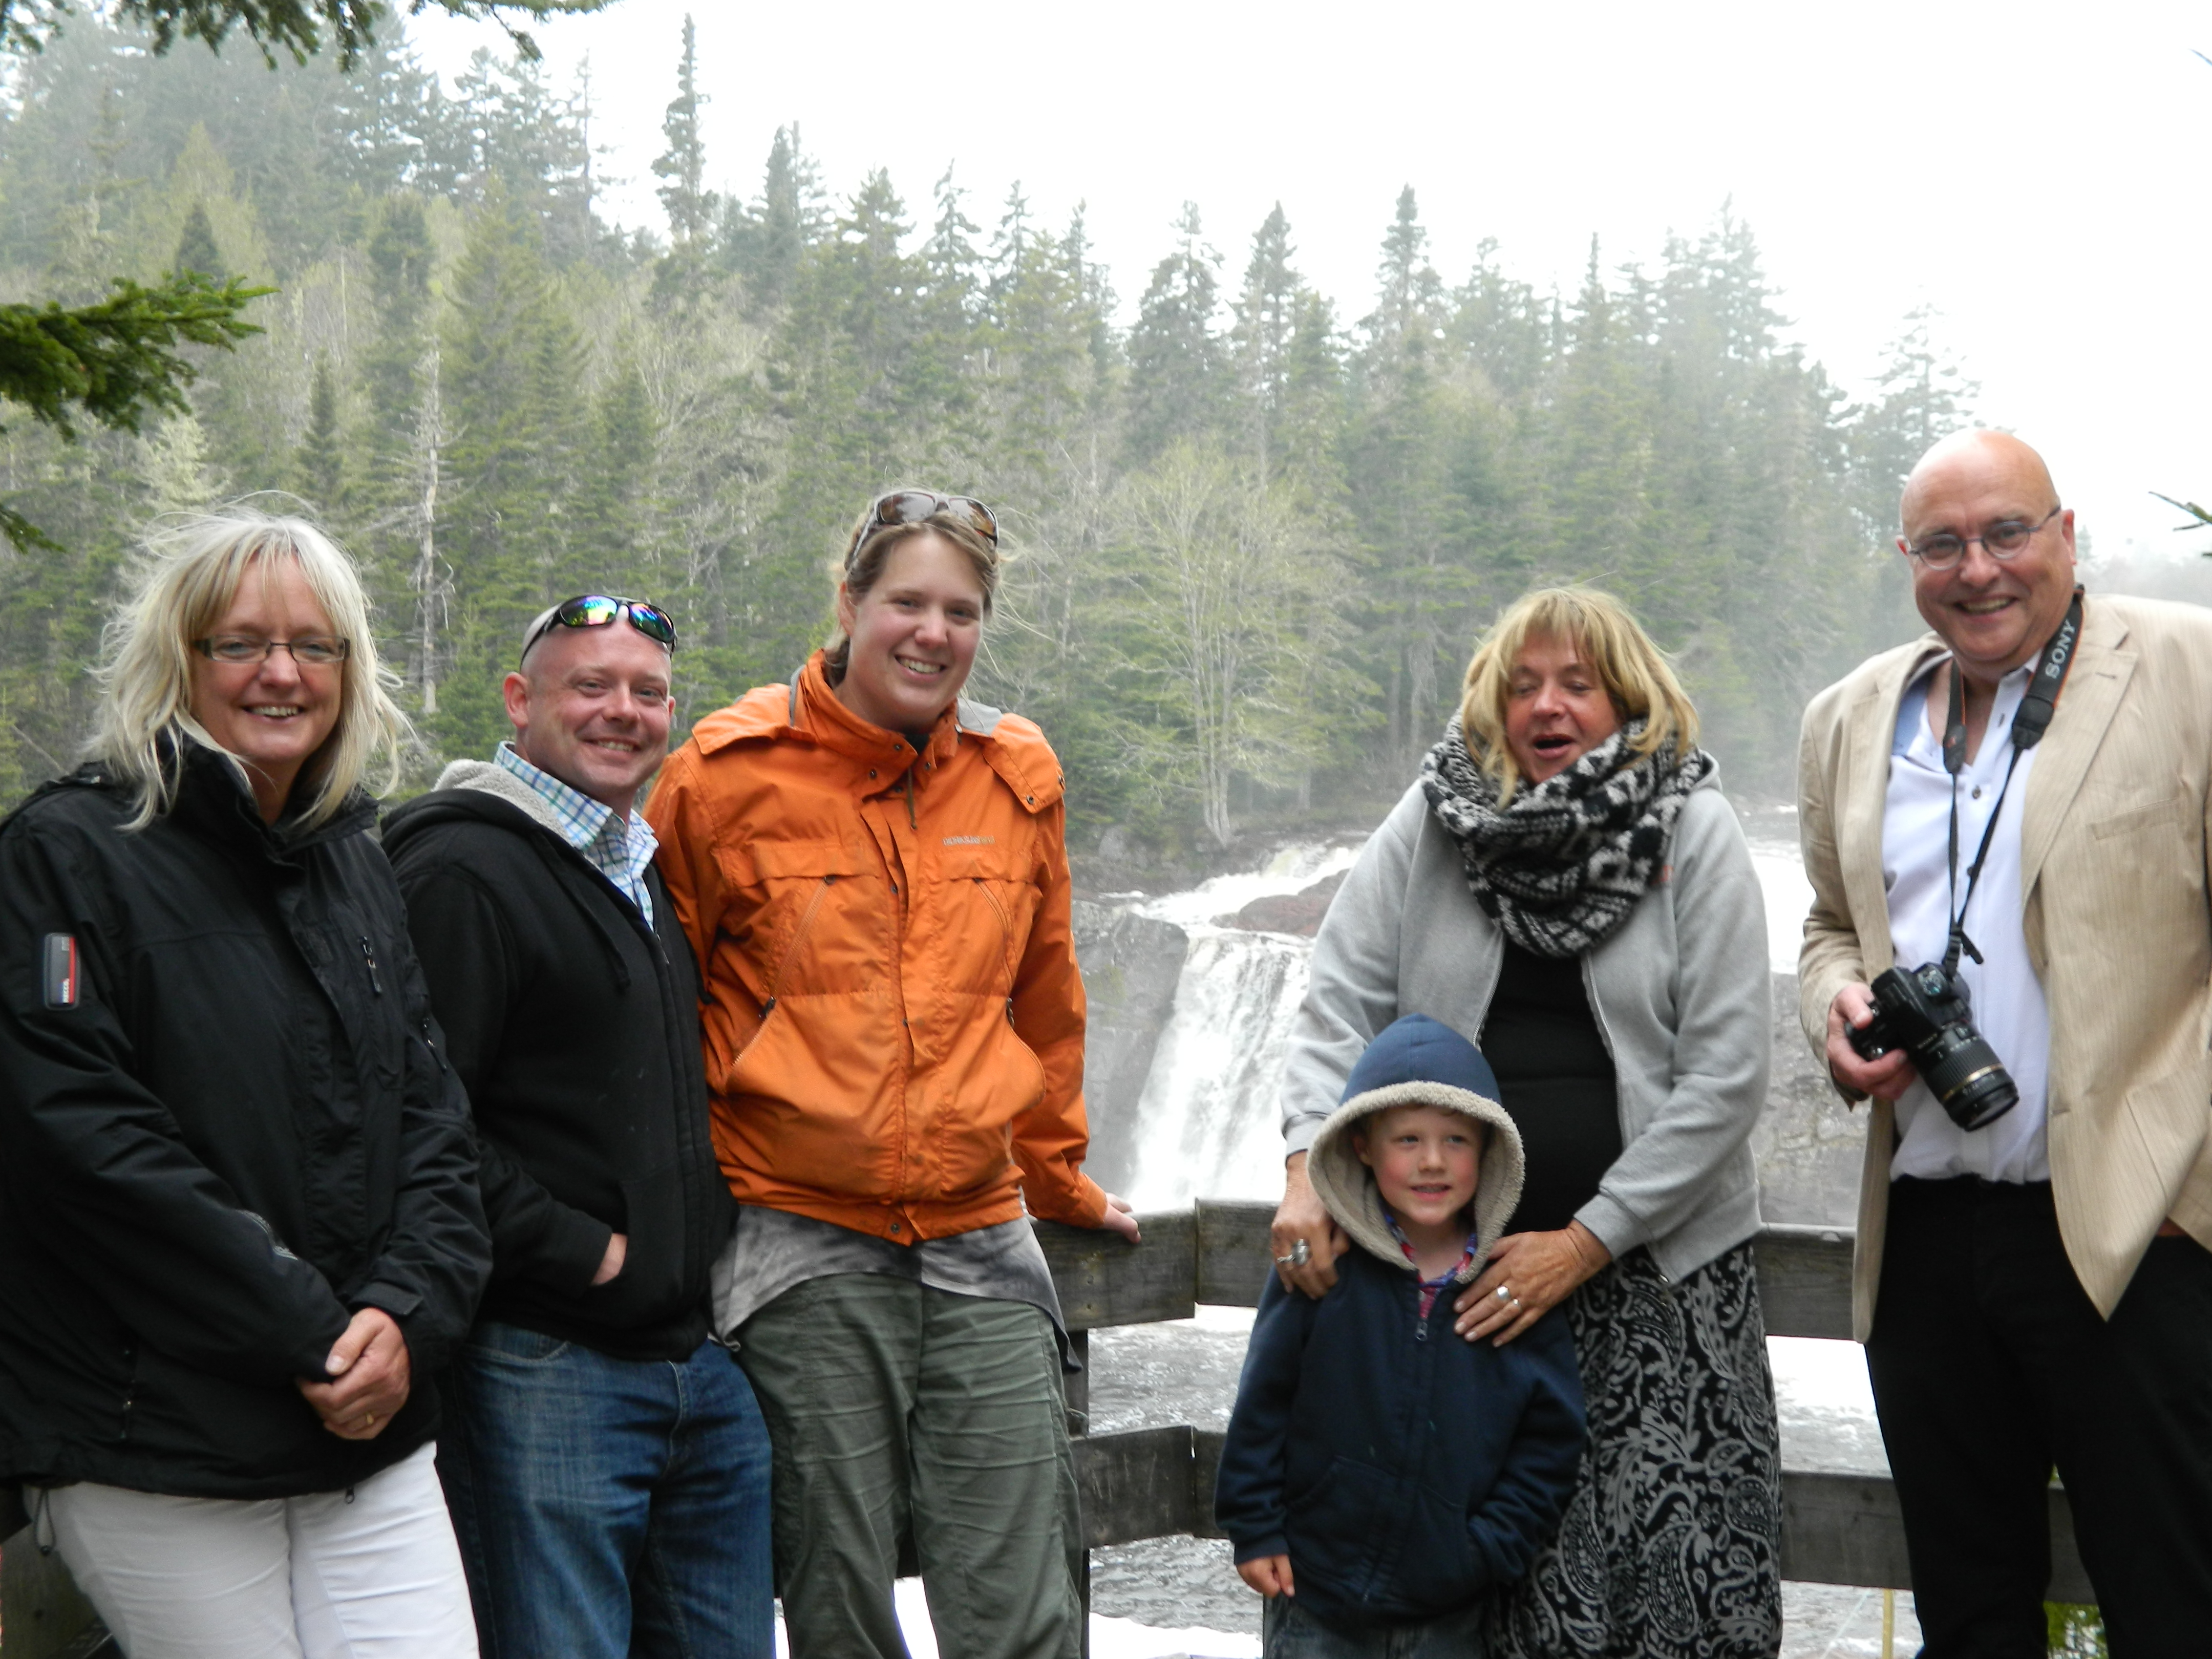 Family picture at Lepreau falls